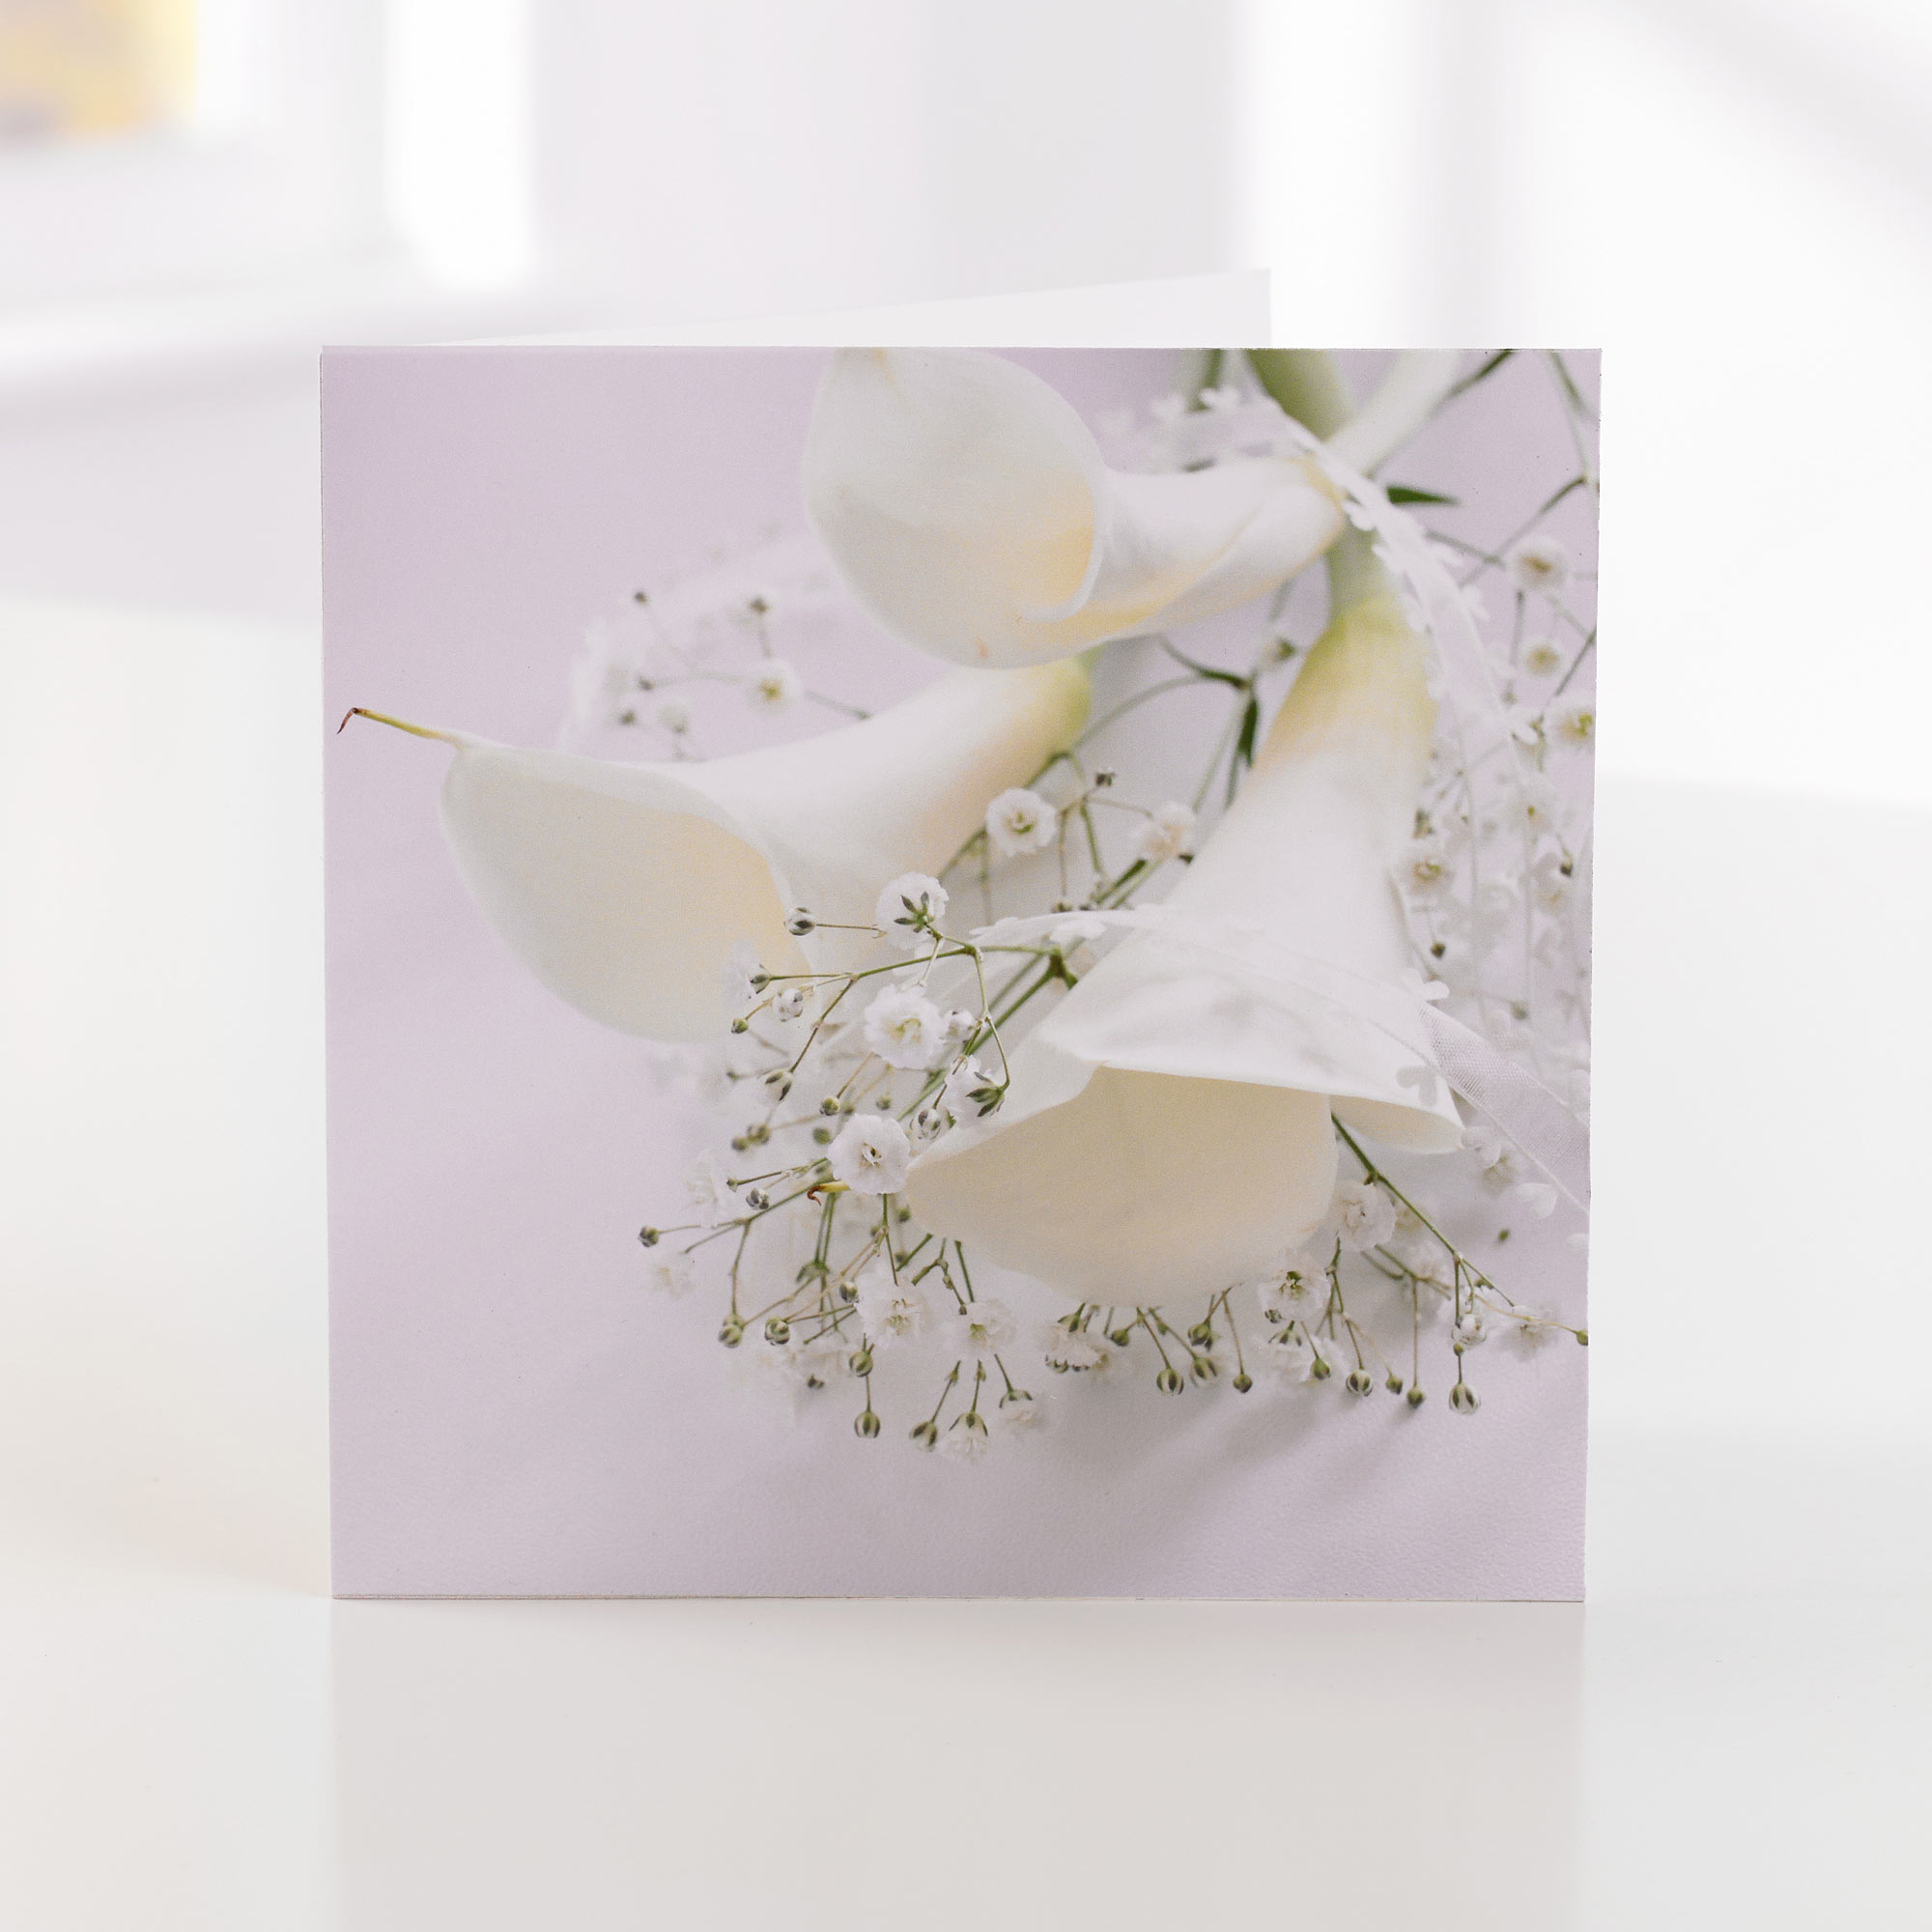 Thinking Of You Greetings Card Sweeneys Florist